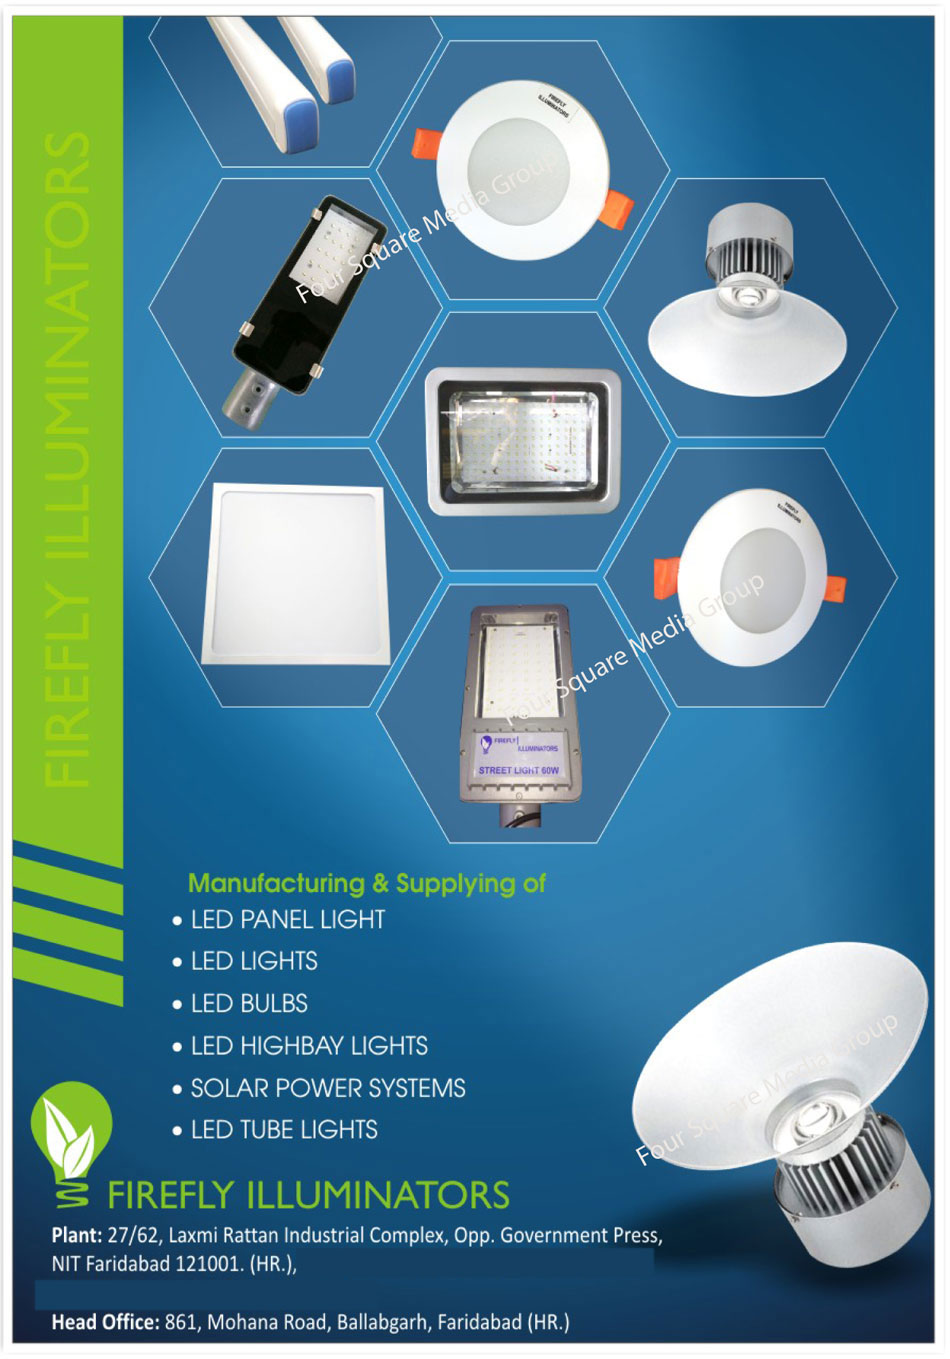 Led Lights, Led Street Lights, Led Flood Lights, Led High Bay Lights, Led Panel Lights, Panel Led Lights, Slim Panel Lights, Panel Slim Lights, Concealed Lights, Indoor Lights, Outdoor Lights